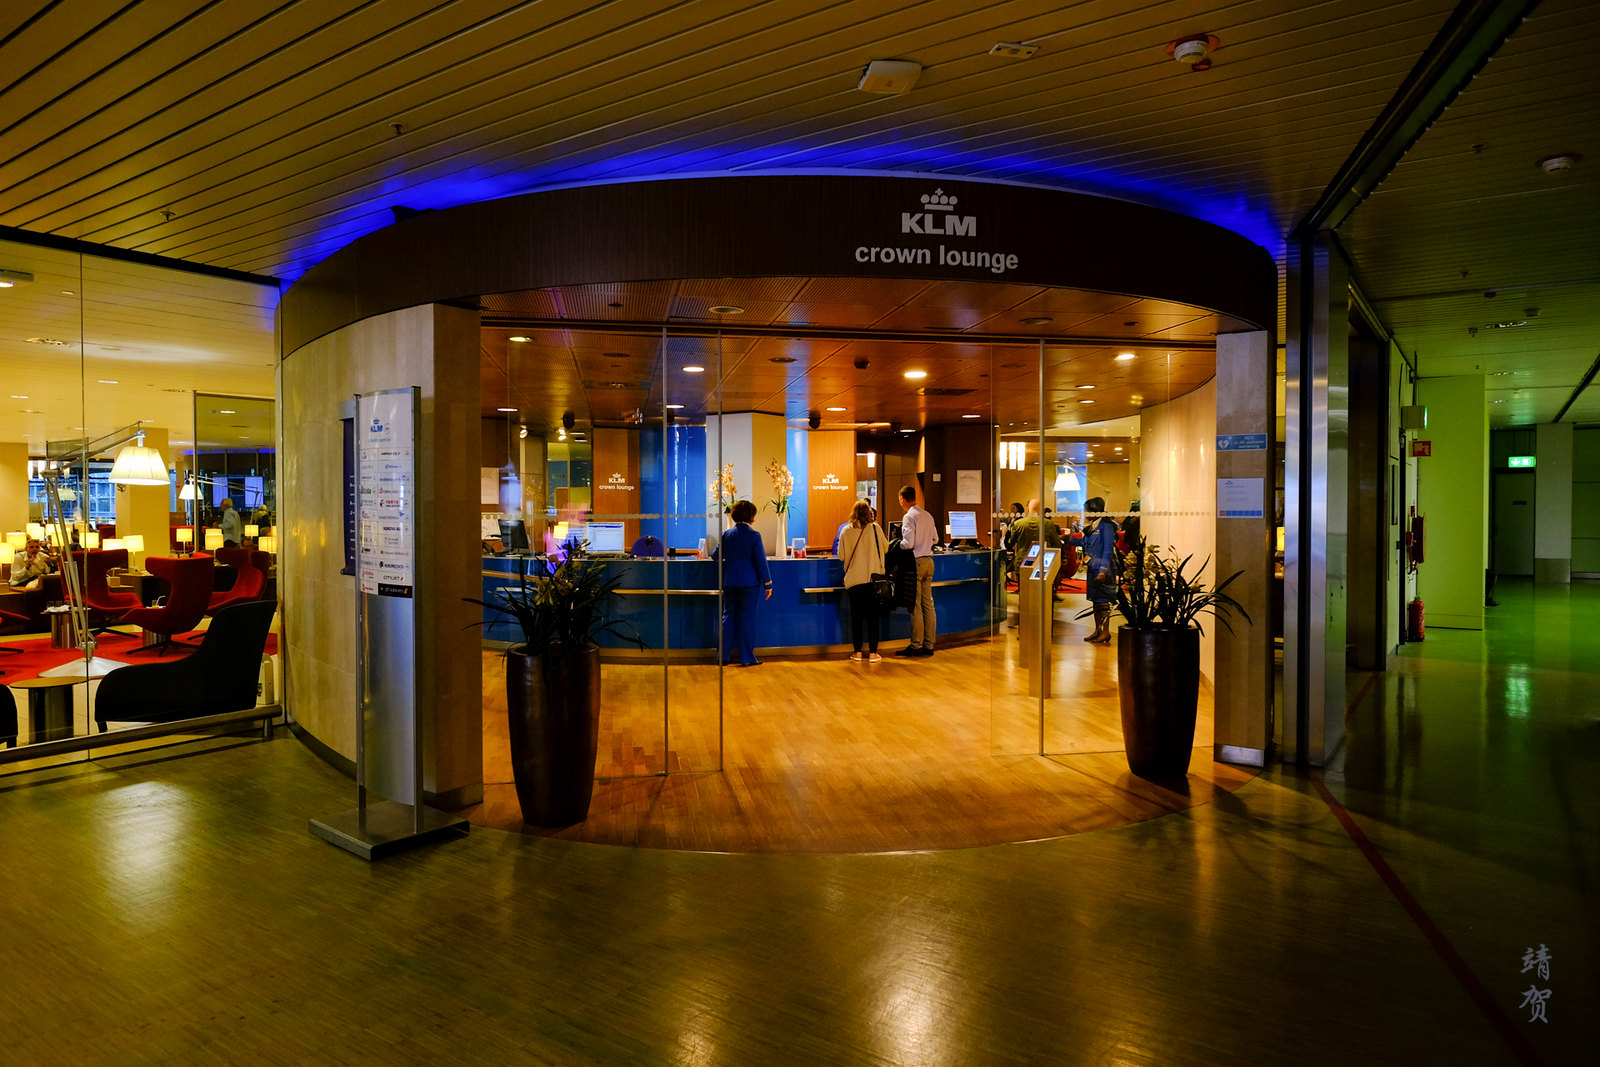 Entrance to the KLM Crown Lounge